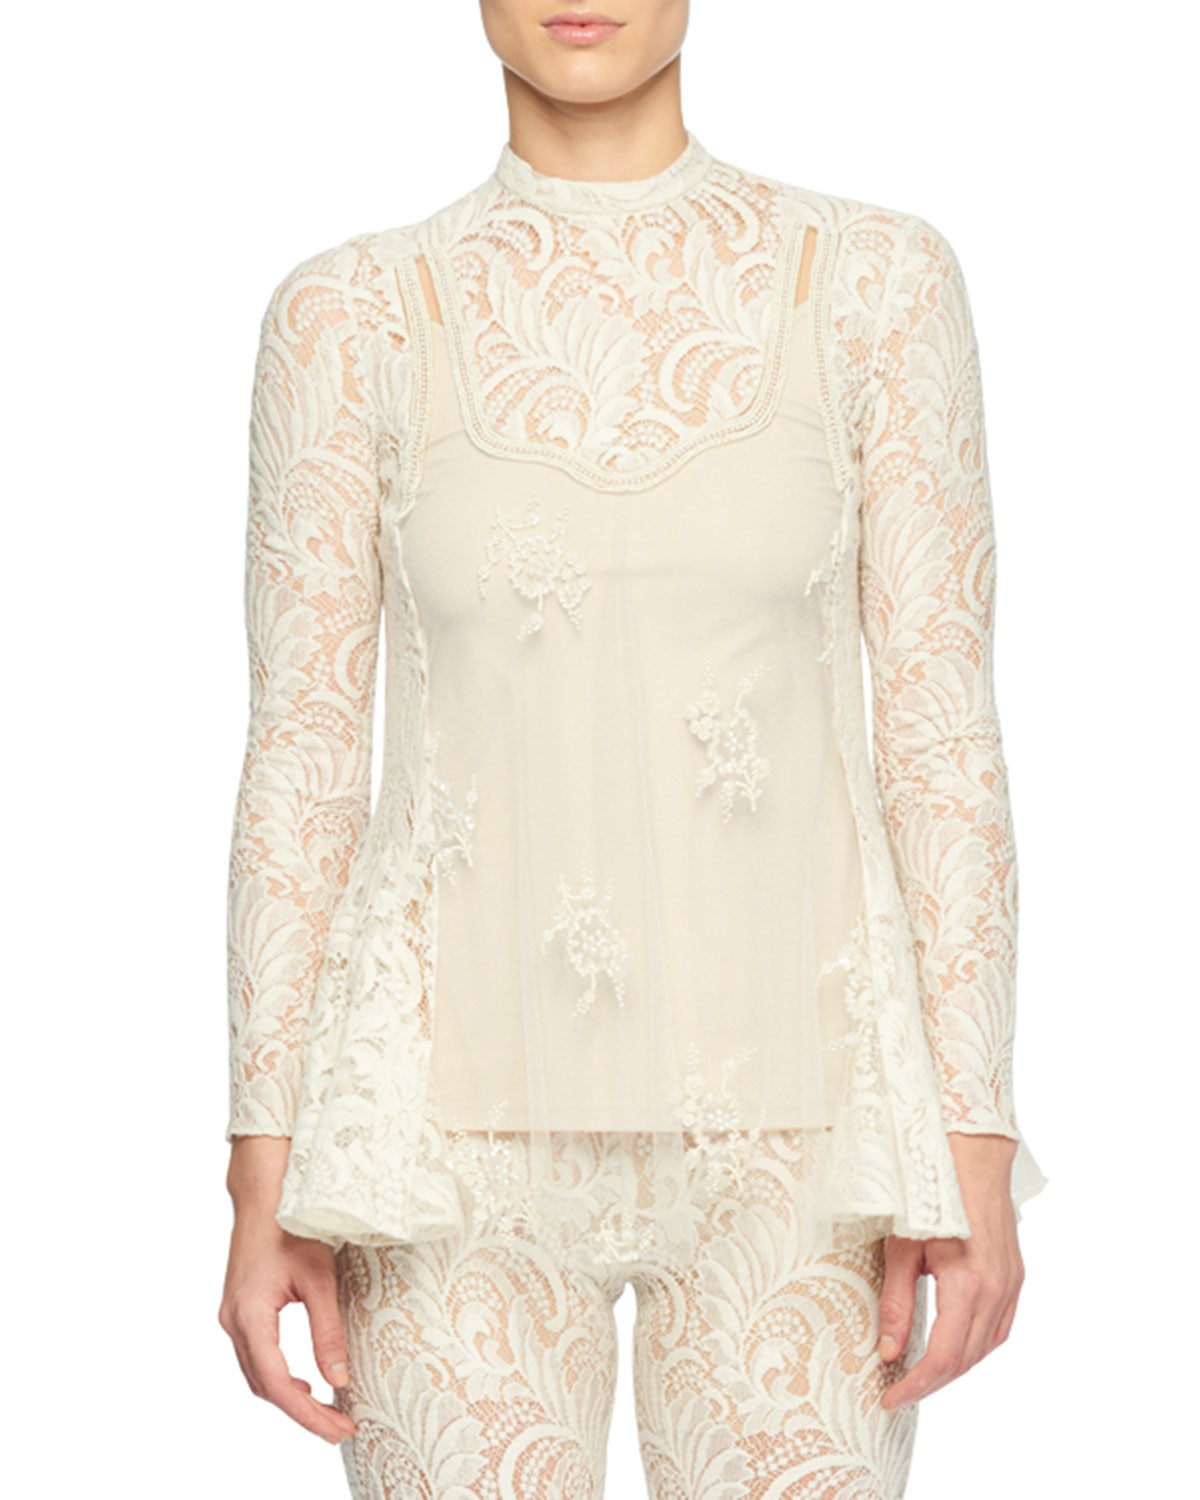 Embellished Paneled Wool-Blend Lace And Tulle Blouse in Ivory